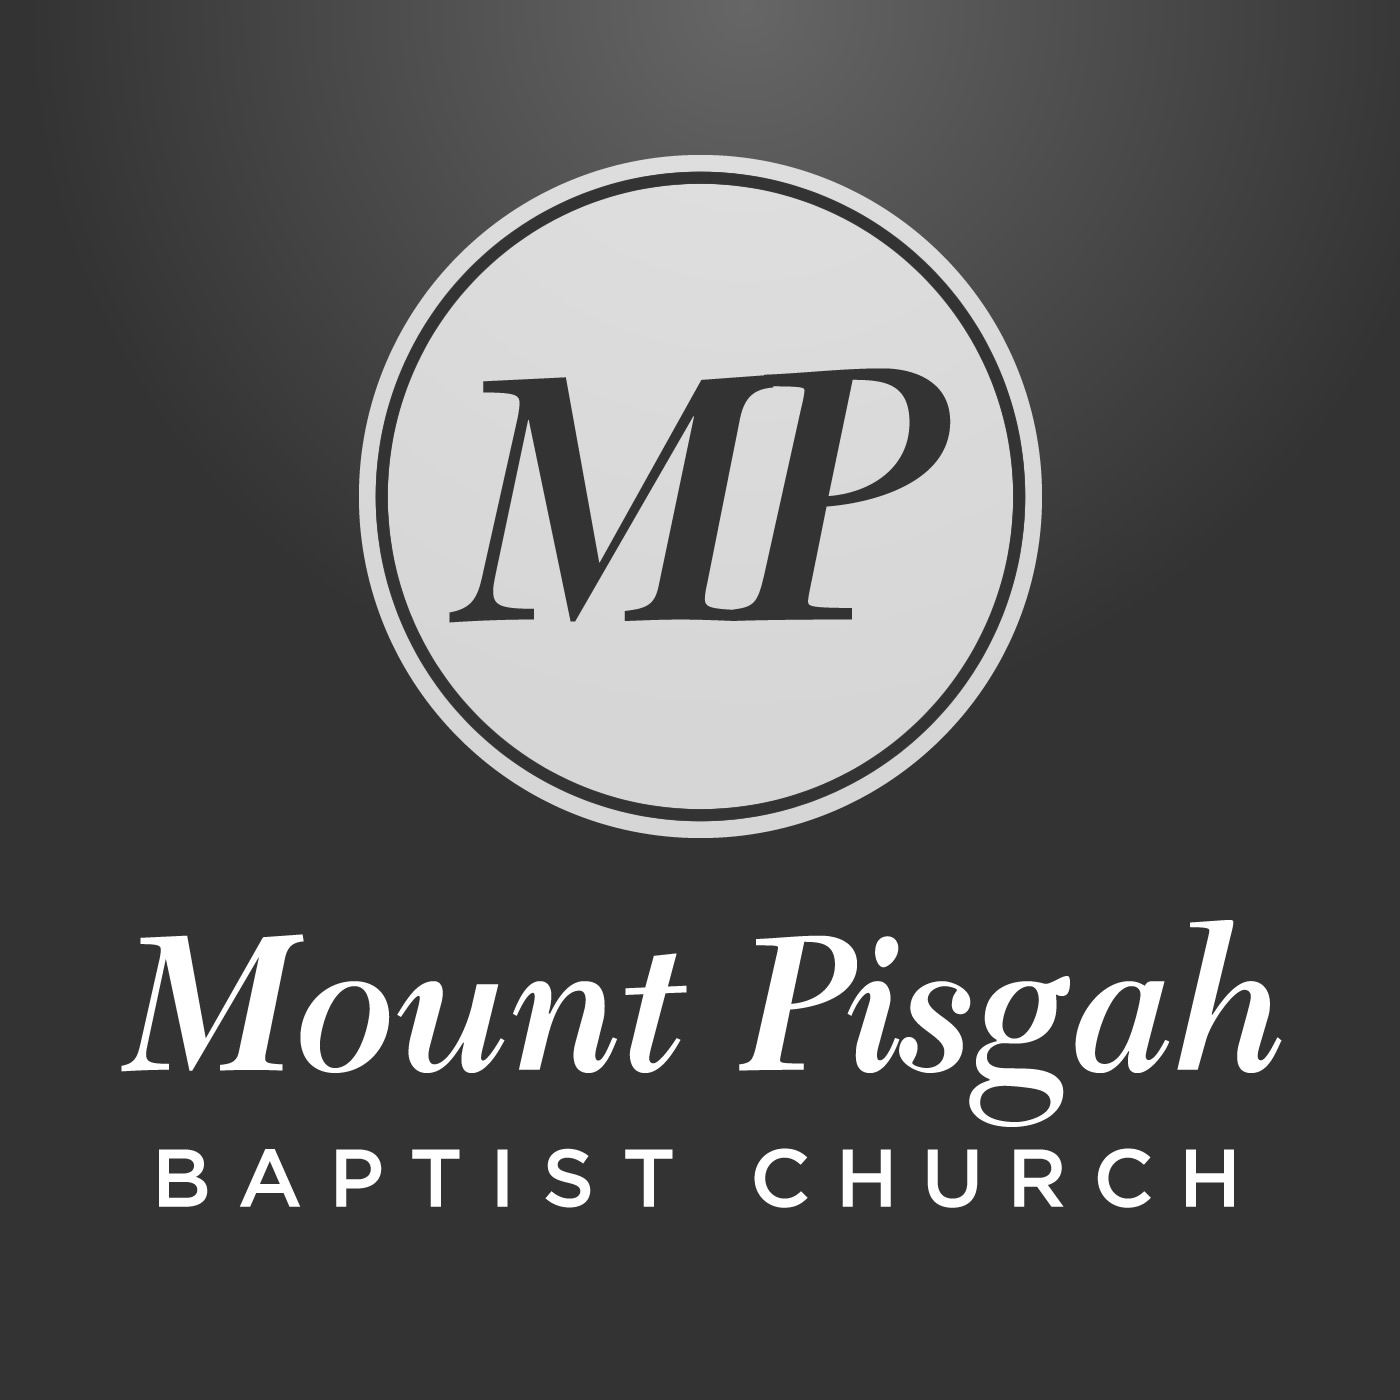 Mount Pisgah Baptist Church